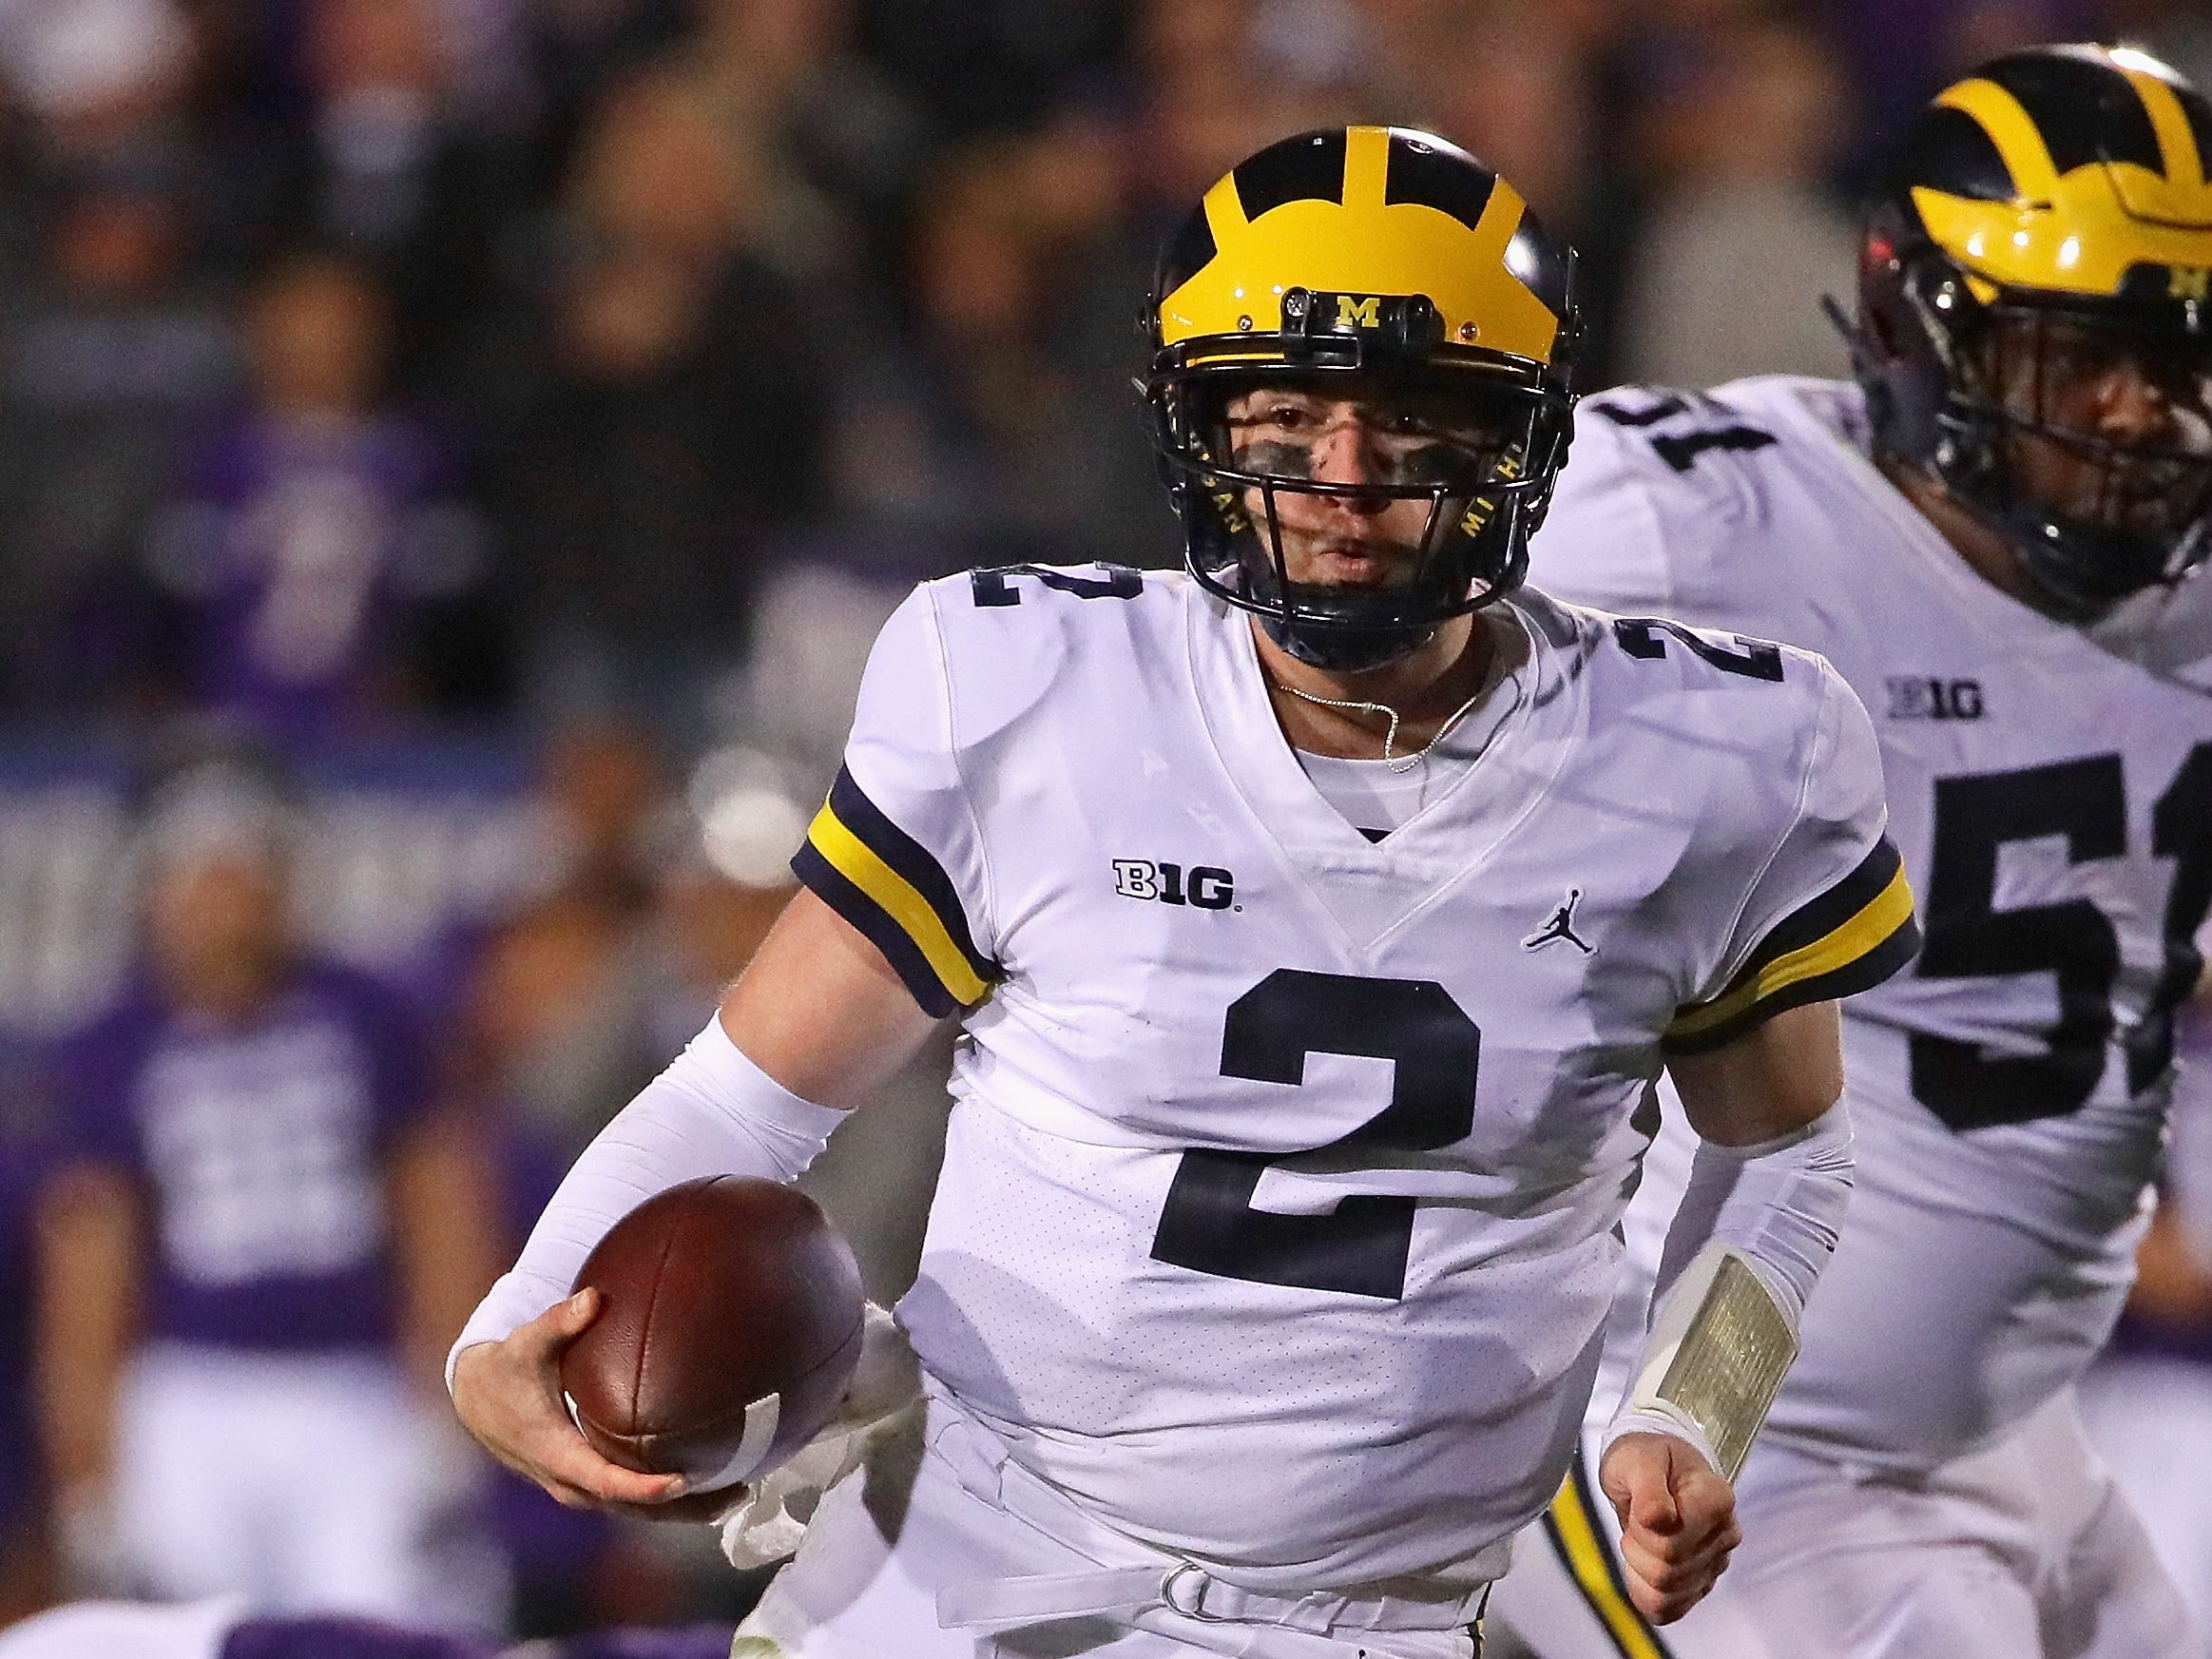 Michigan's Shea Patterson runs for a first down against Northwestern at Ryan Field on Sept. 29, 2018 in Evanston, Ill.